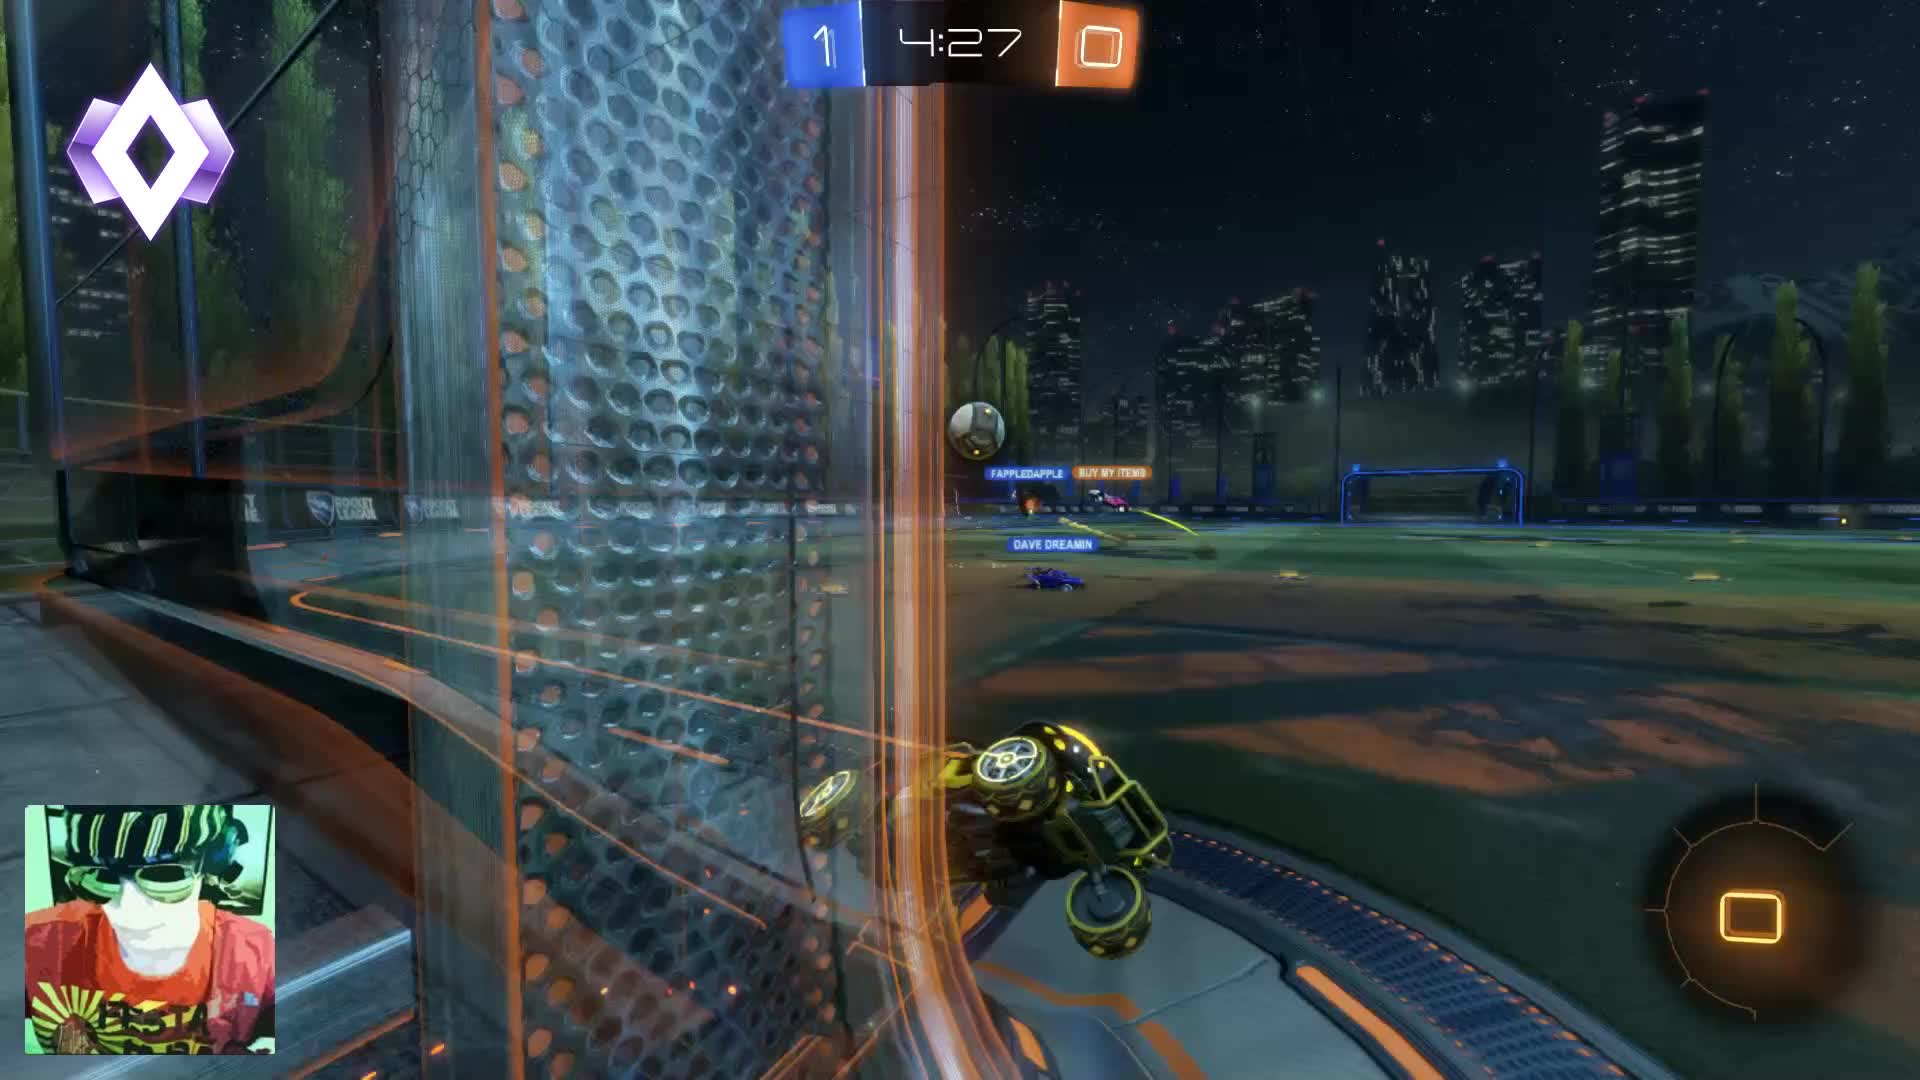 Gif Your Game, GifYourGame, Goal, Rocket League, RocketLeague, alex, Goal 2: alex GIFs